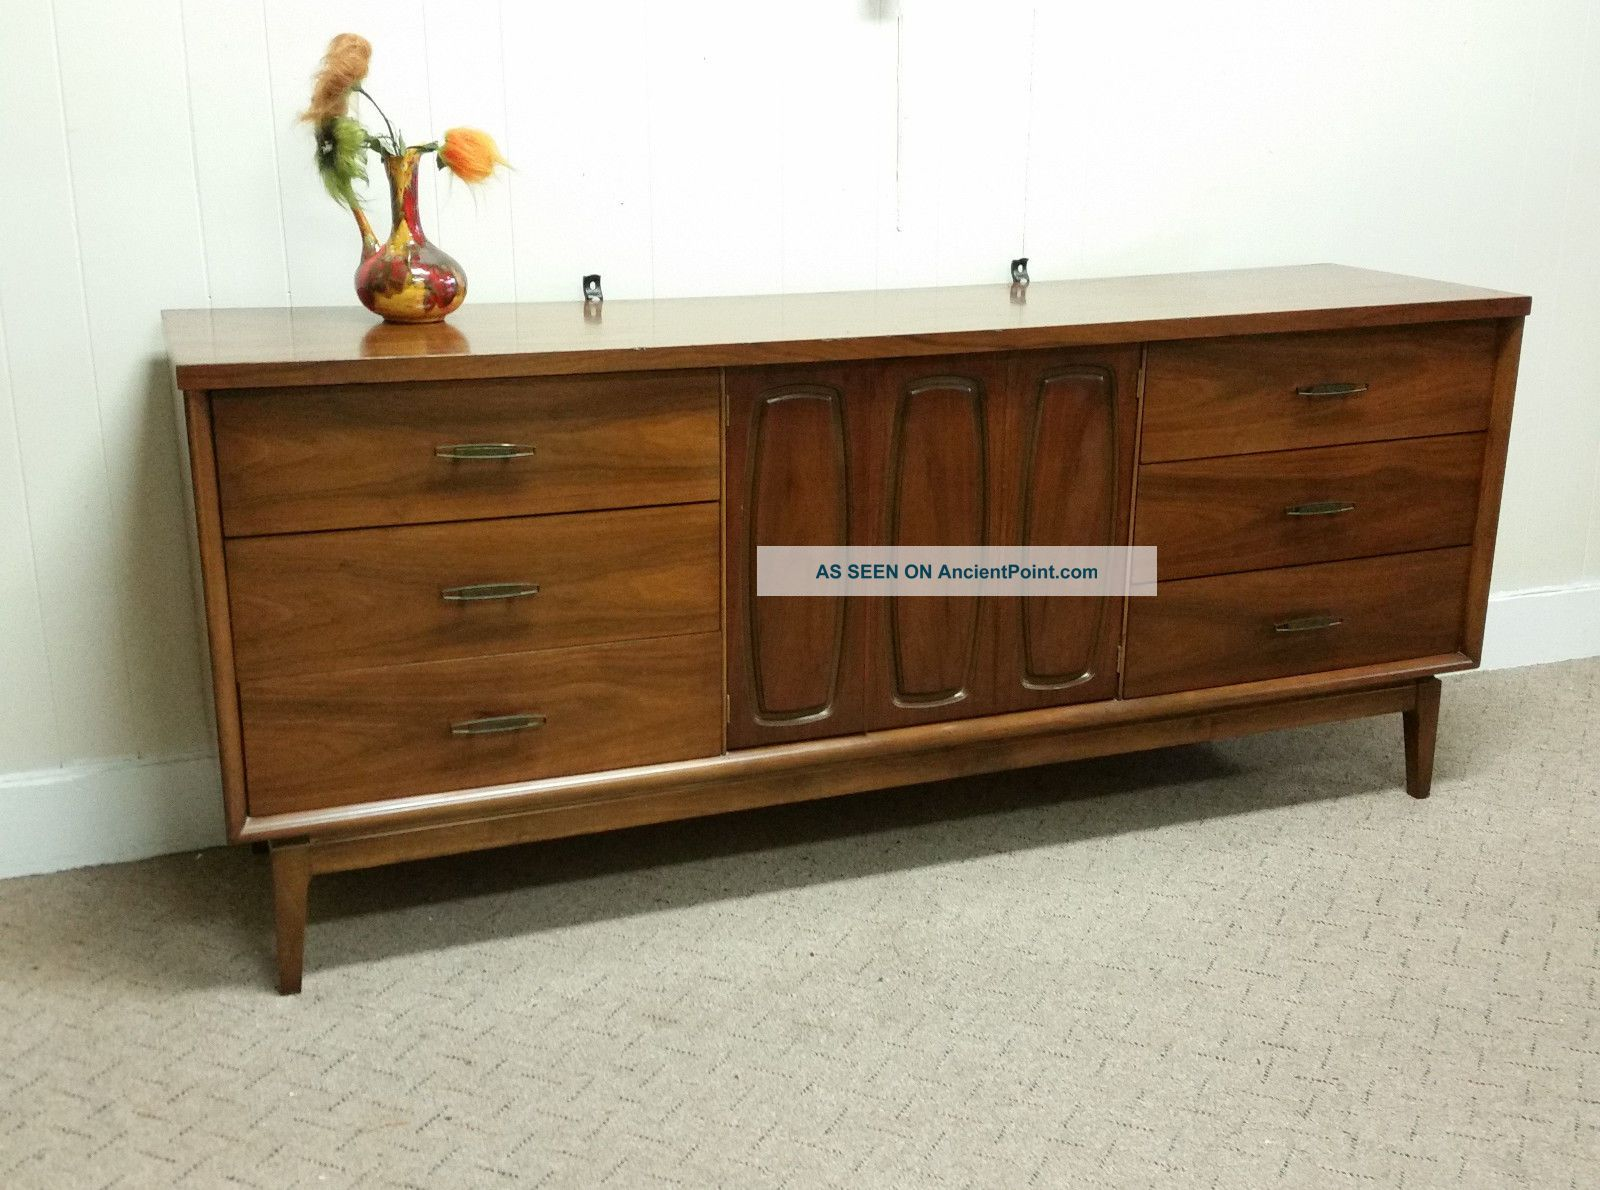 Vintage Mid Century Modern Broyhill Emphasis Walnut Triple Dresser Sideboard Post-1950 photo